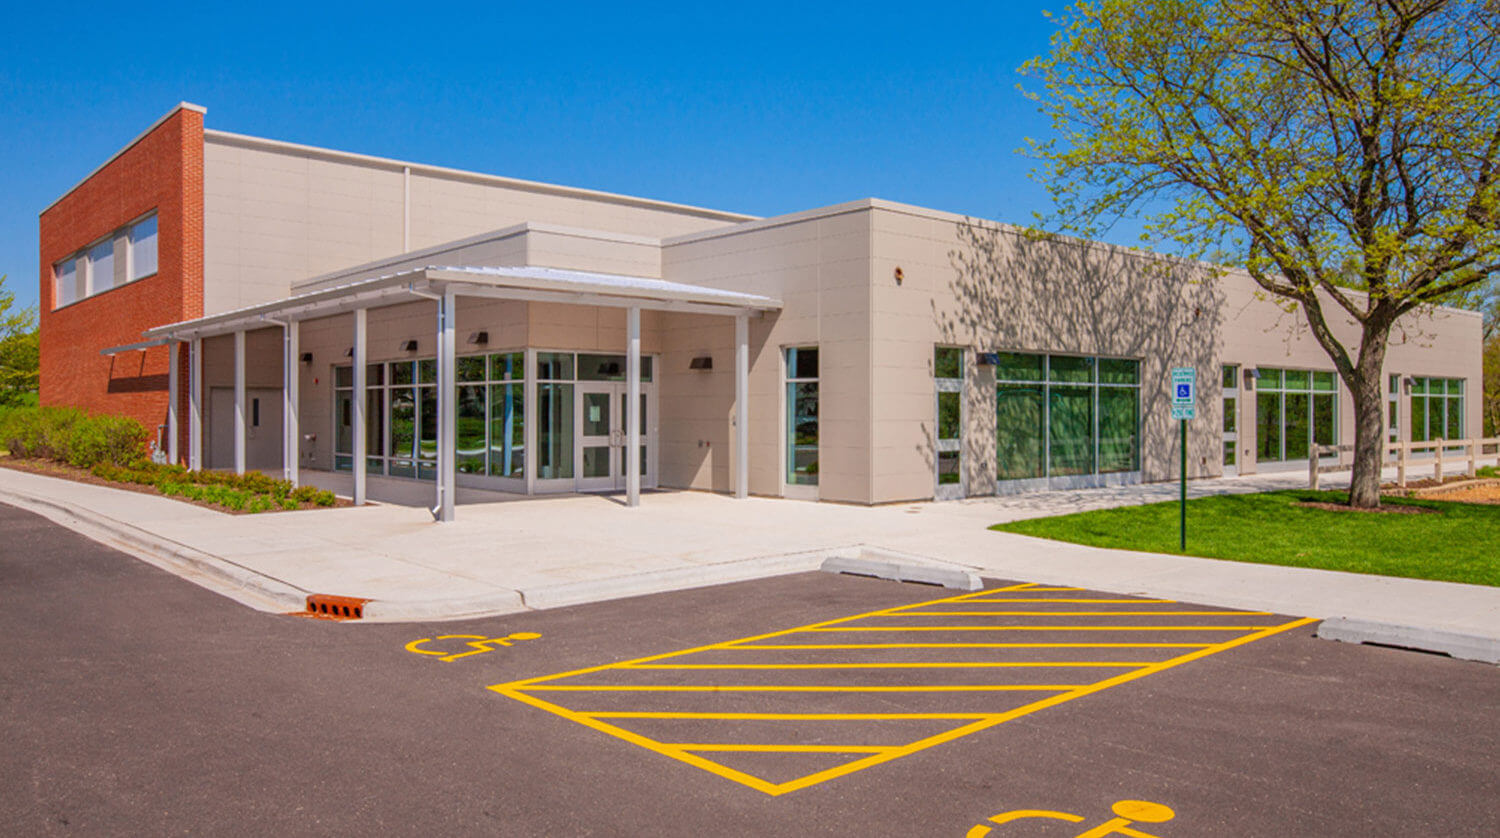 Mundelein Dunbar Recreation Center exterior 2